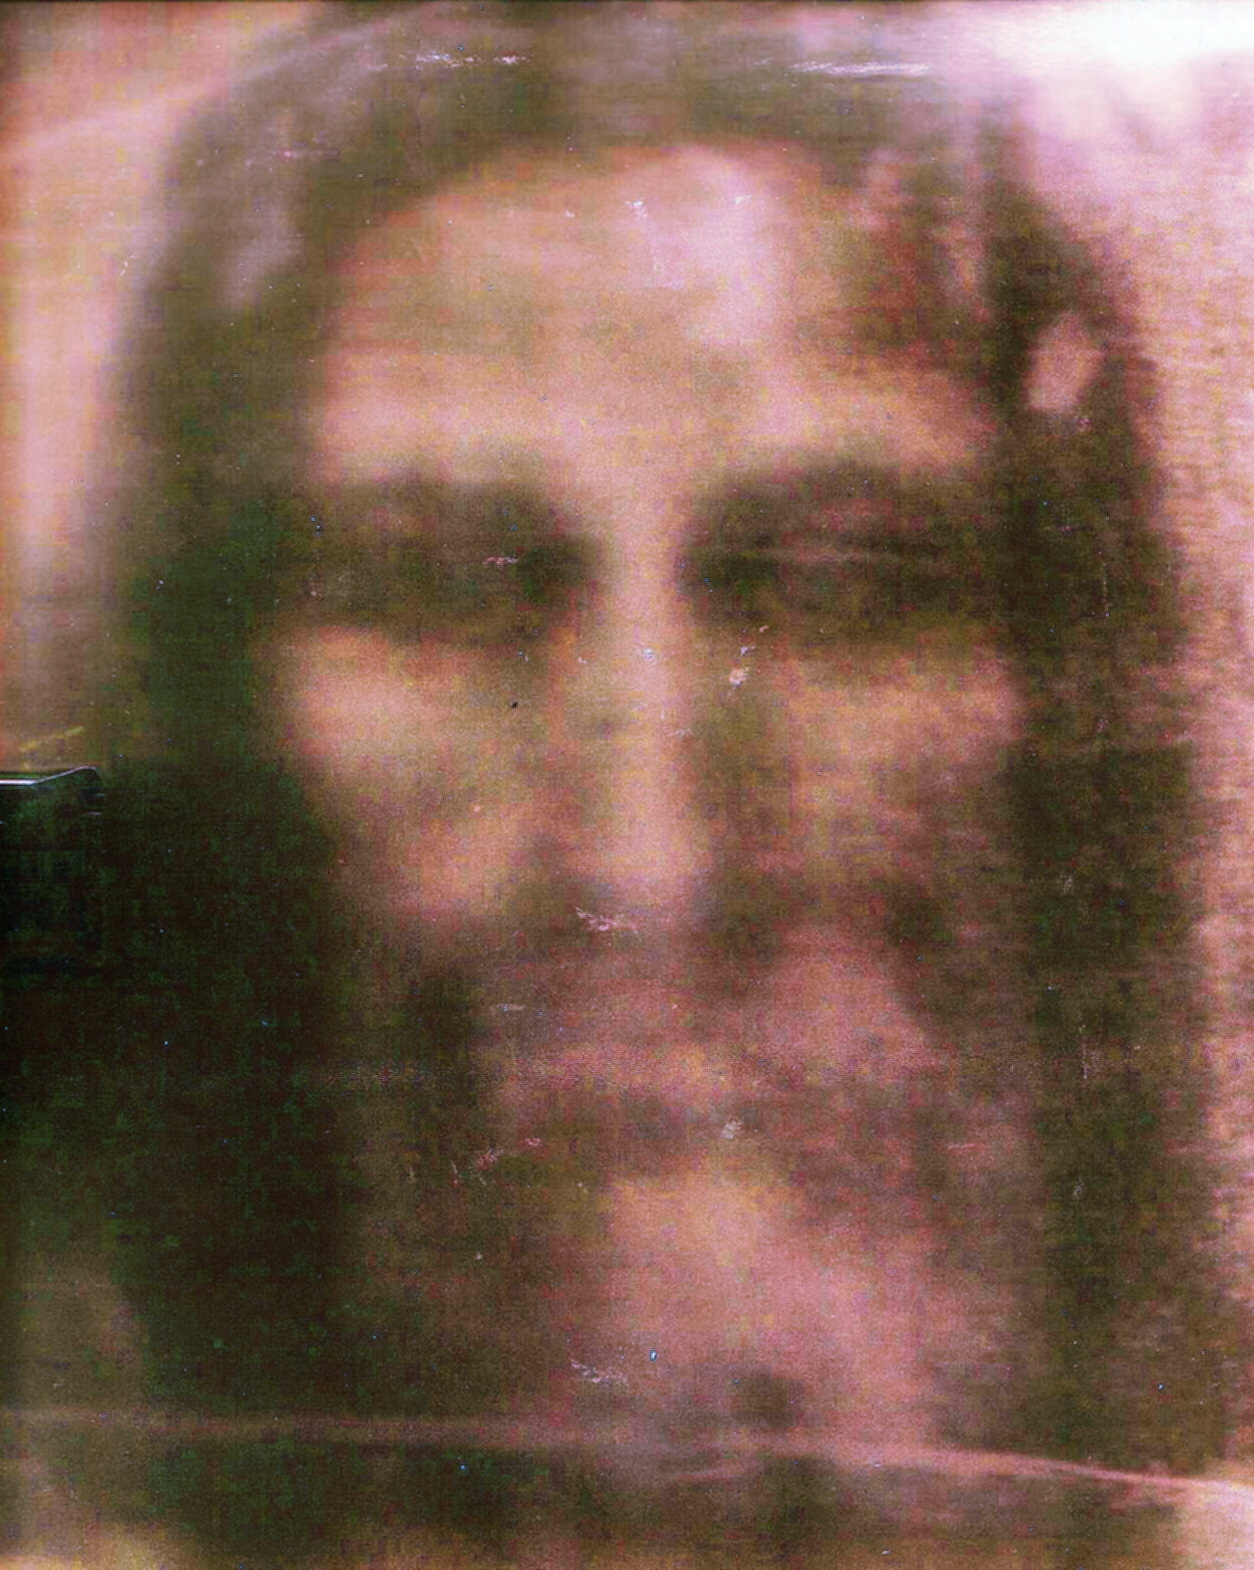 MOSTHOLYFACEOFJESUS: SHROUD OF TURIN COLOR PHOTOGRAPH OF JESUS CHRIST